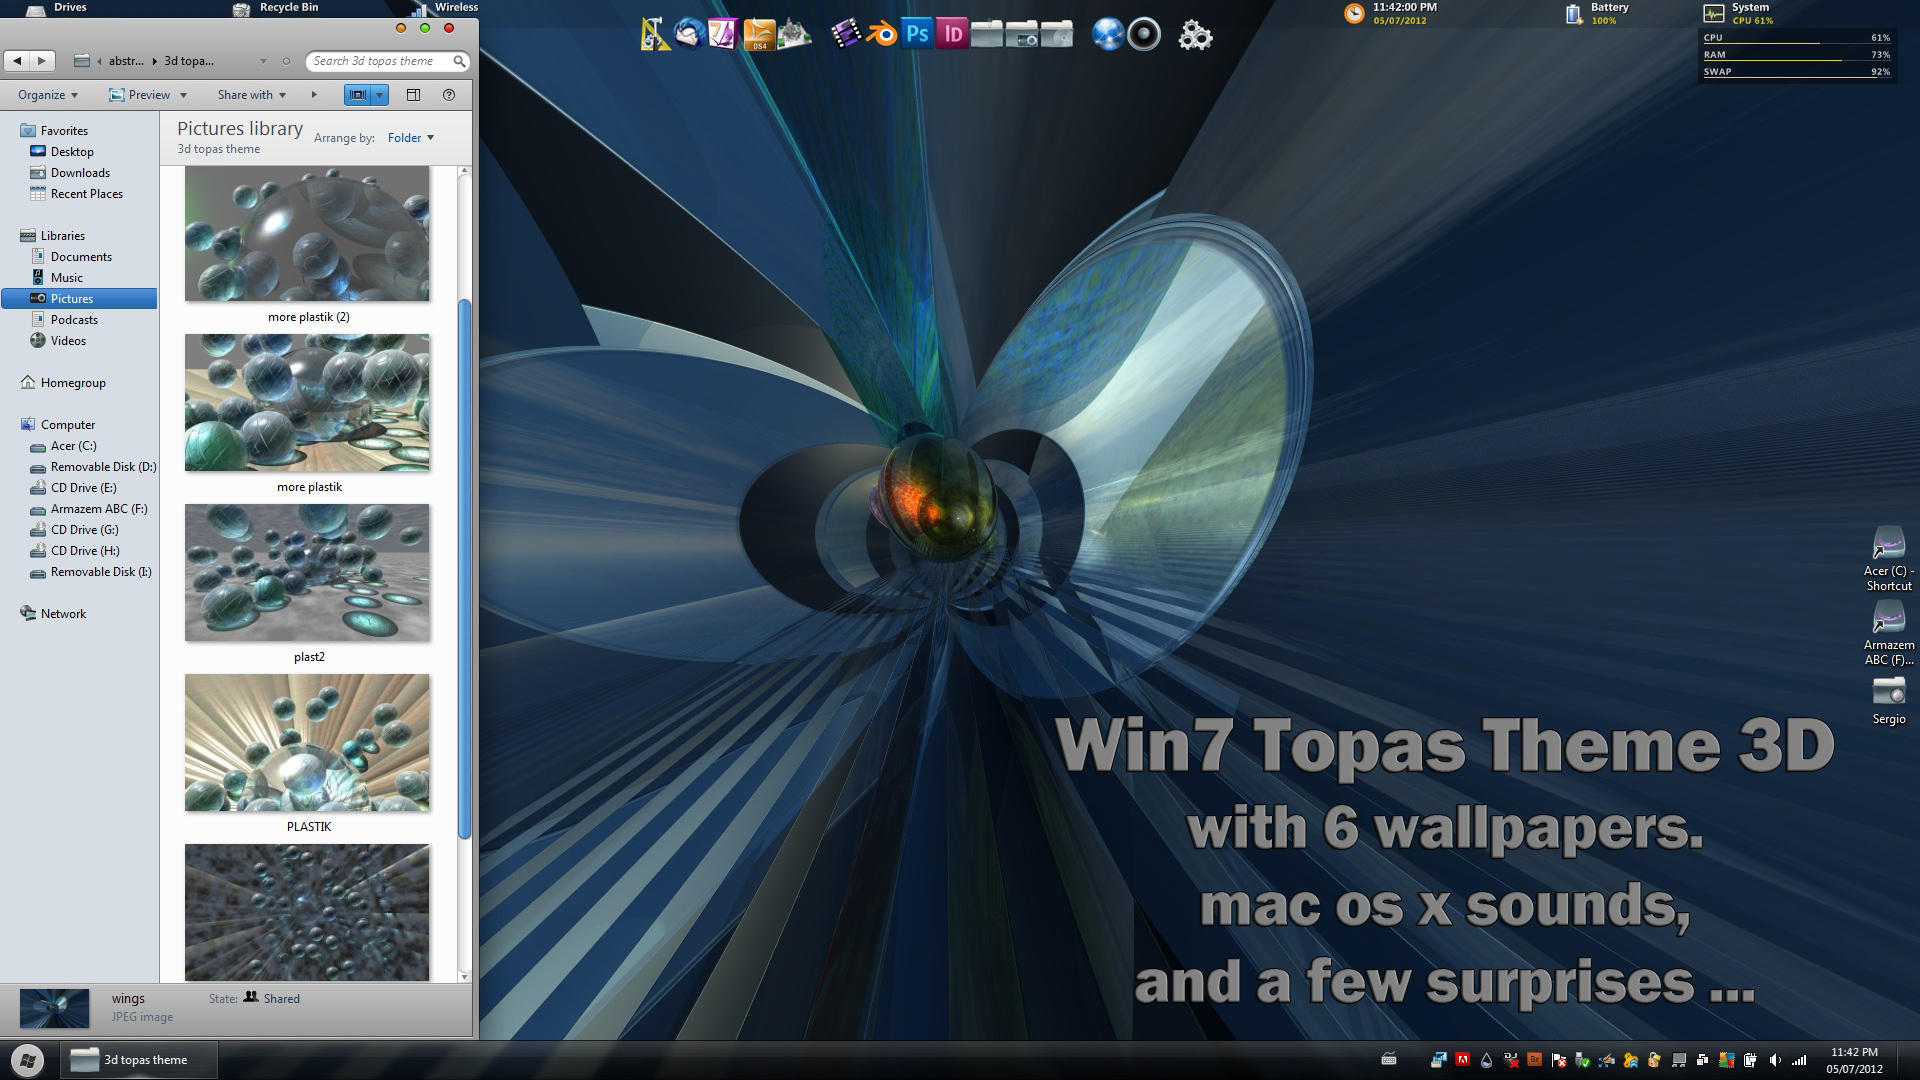 WIN 7 TOPAS THEME 3D by Topas2012